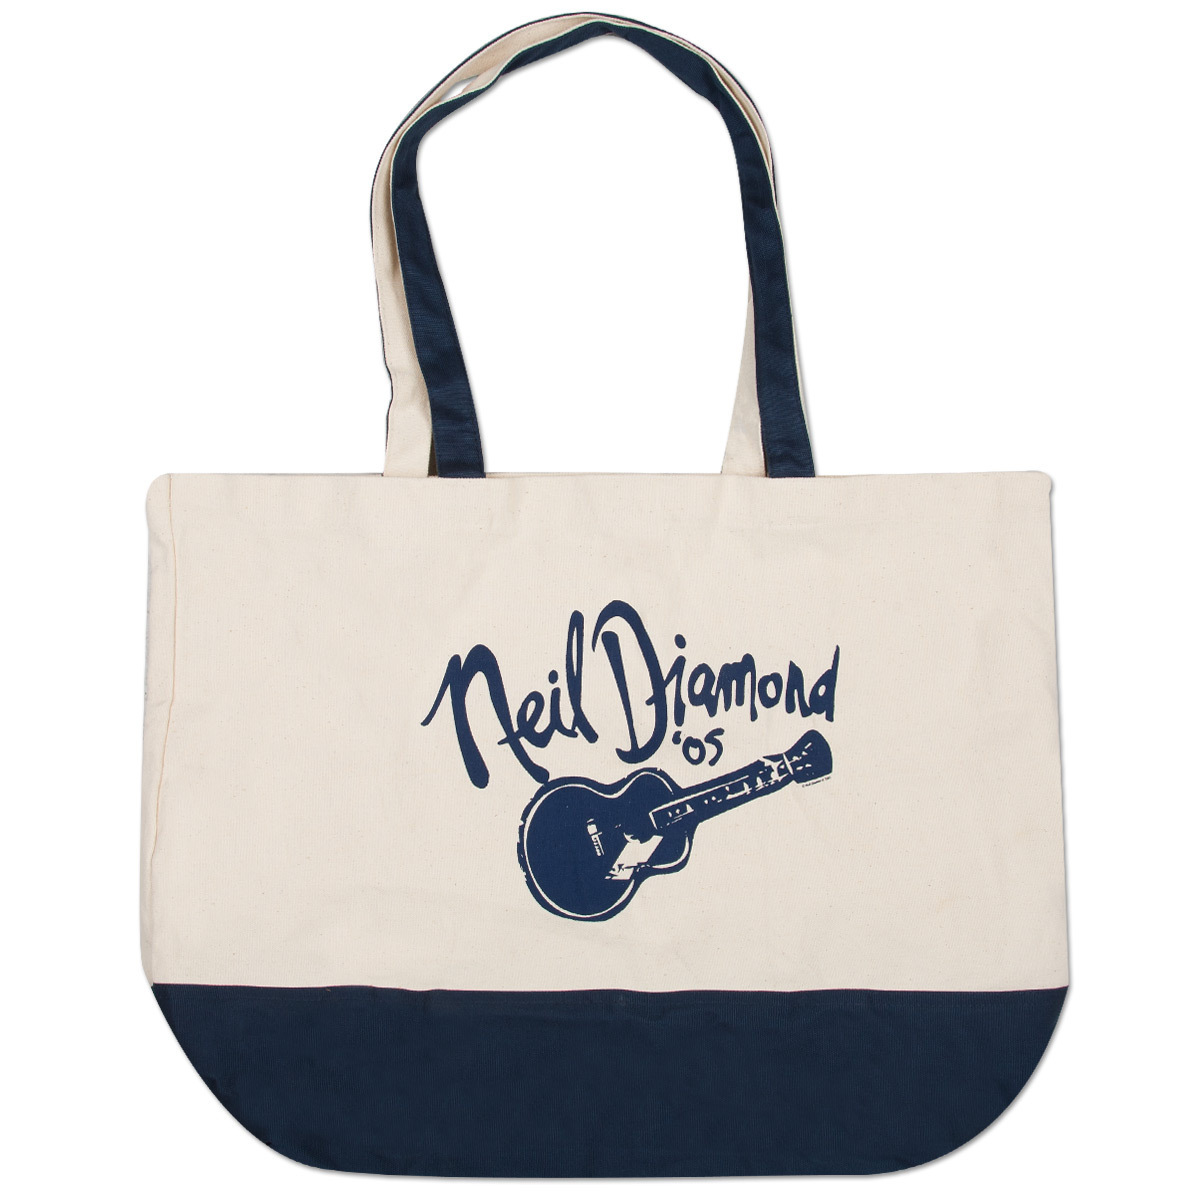 World Tour '05 Tote Bag